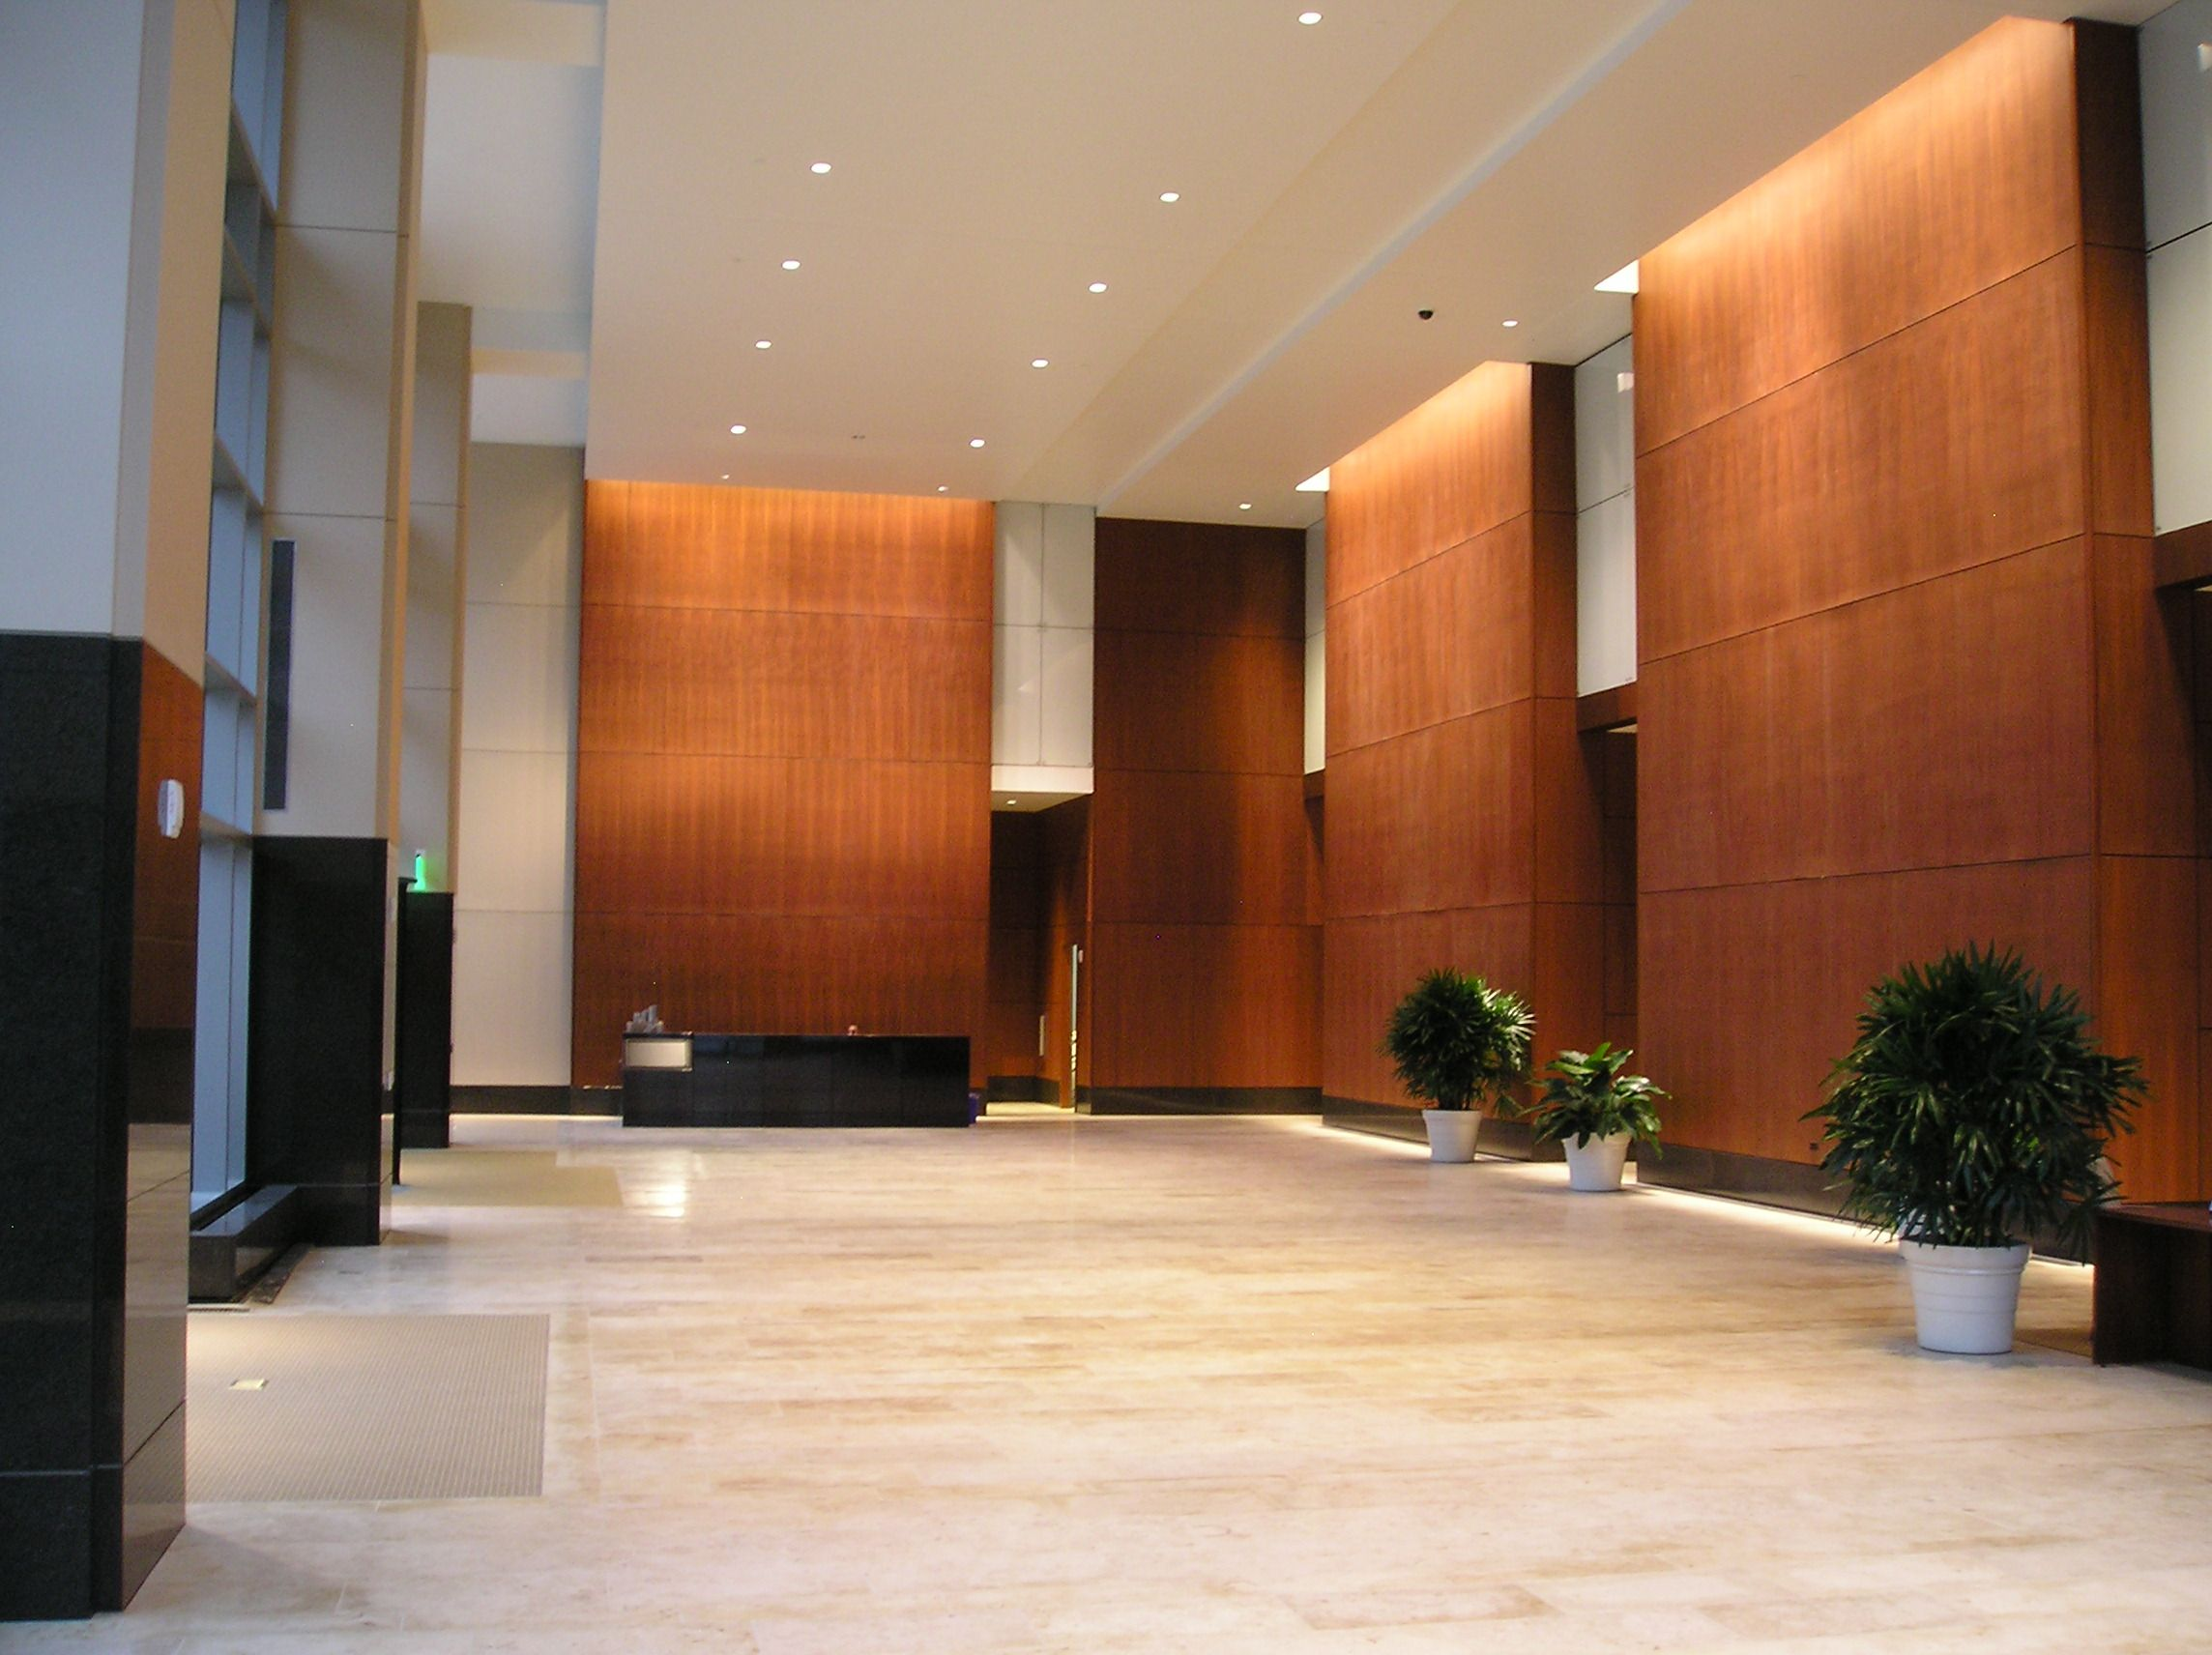 New  Office Building Lobby Modern Office Lobby Interior Design Hobby Lobby